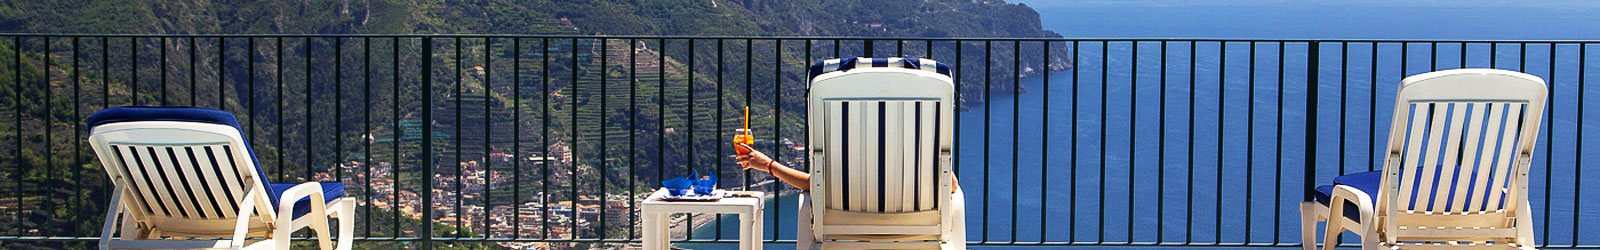 Hotel Graal in Ravello